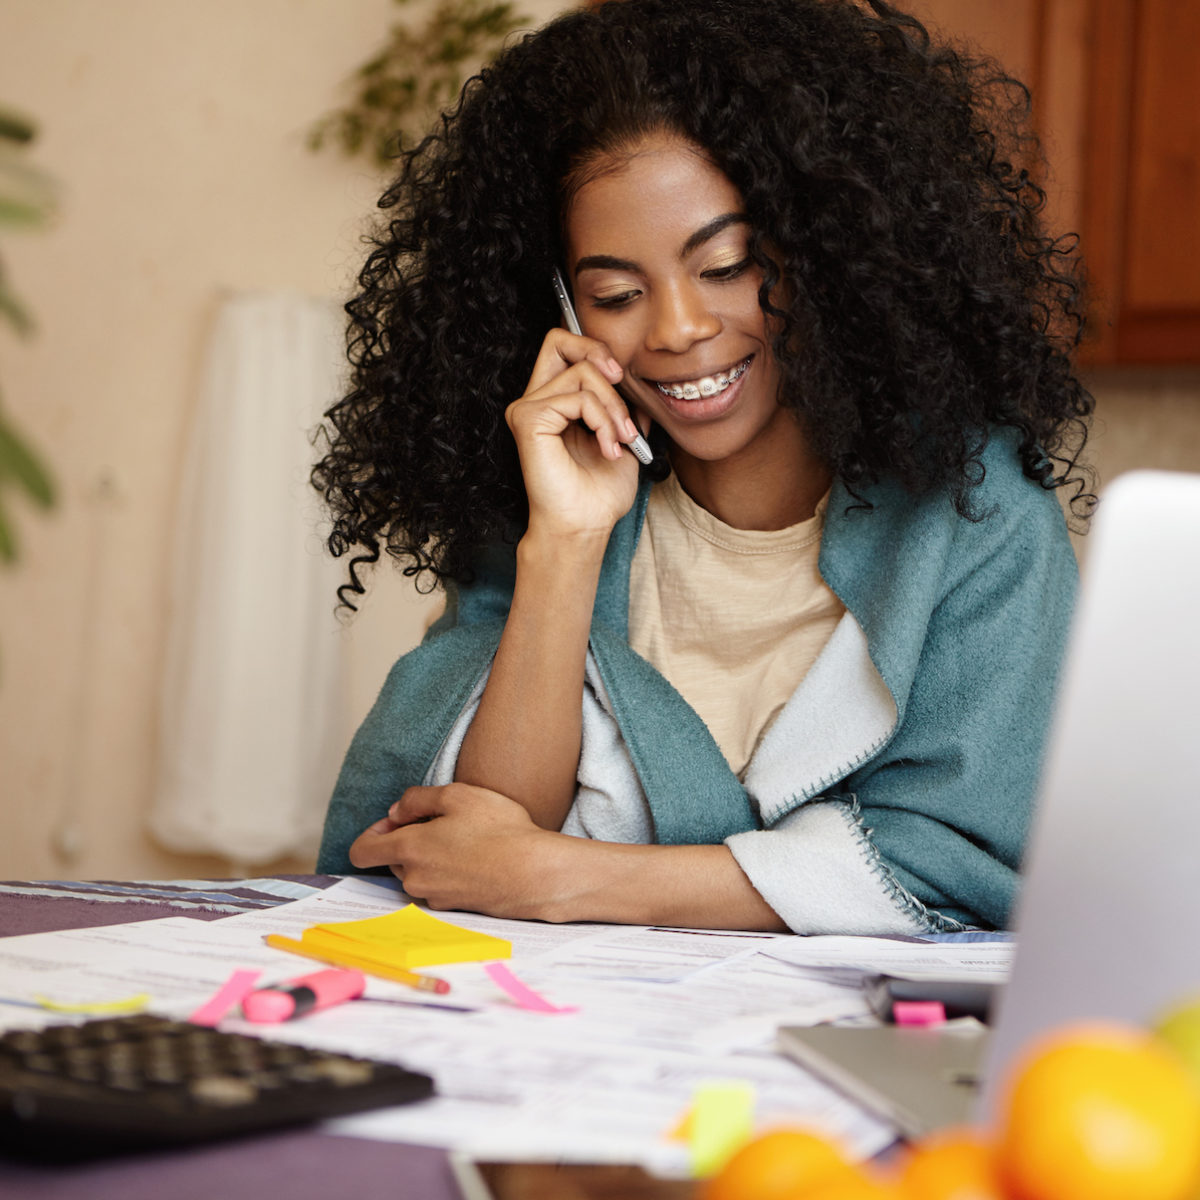 Portrait of young woman with braces smiling happily, talking on phone while sitting at kitchen table with calculator and laptop pc, managing family budget